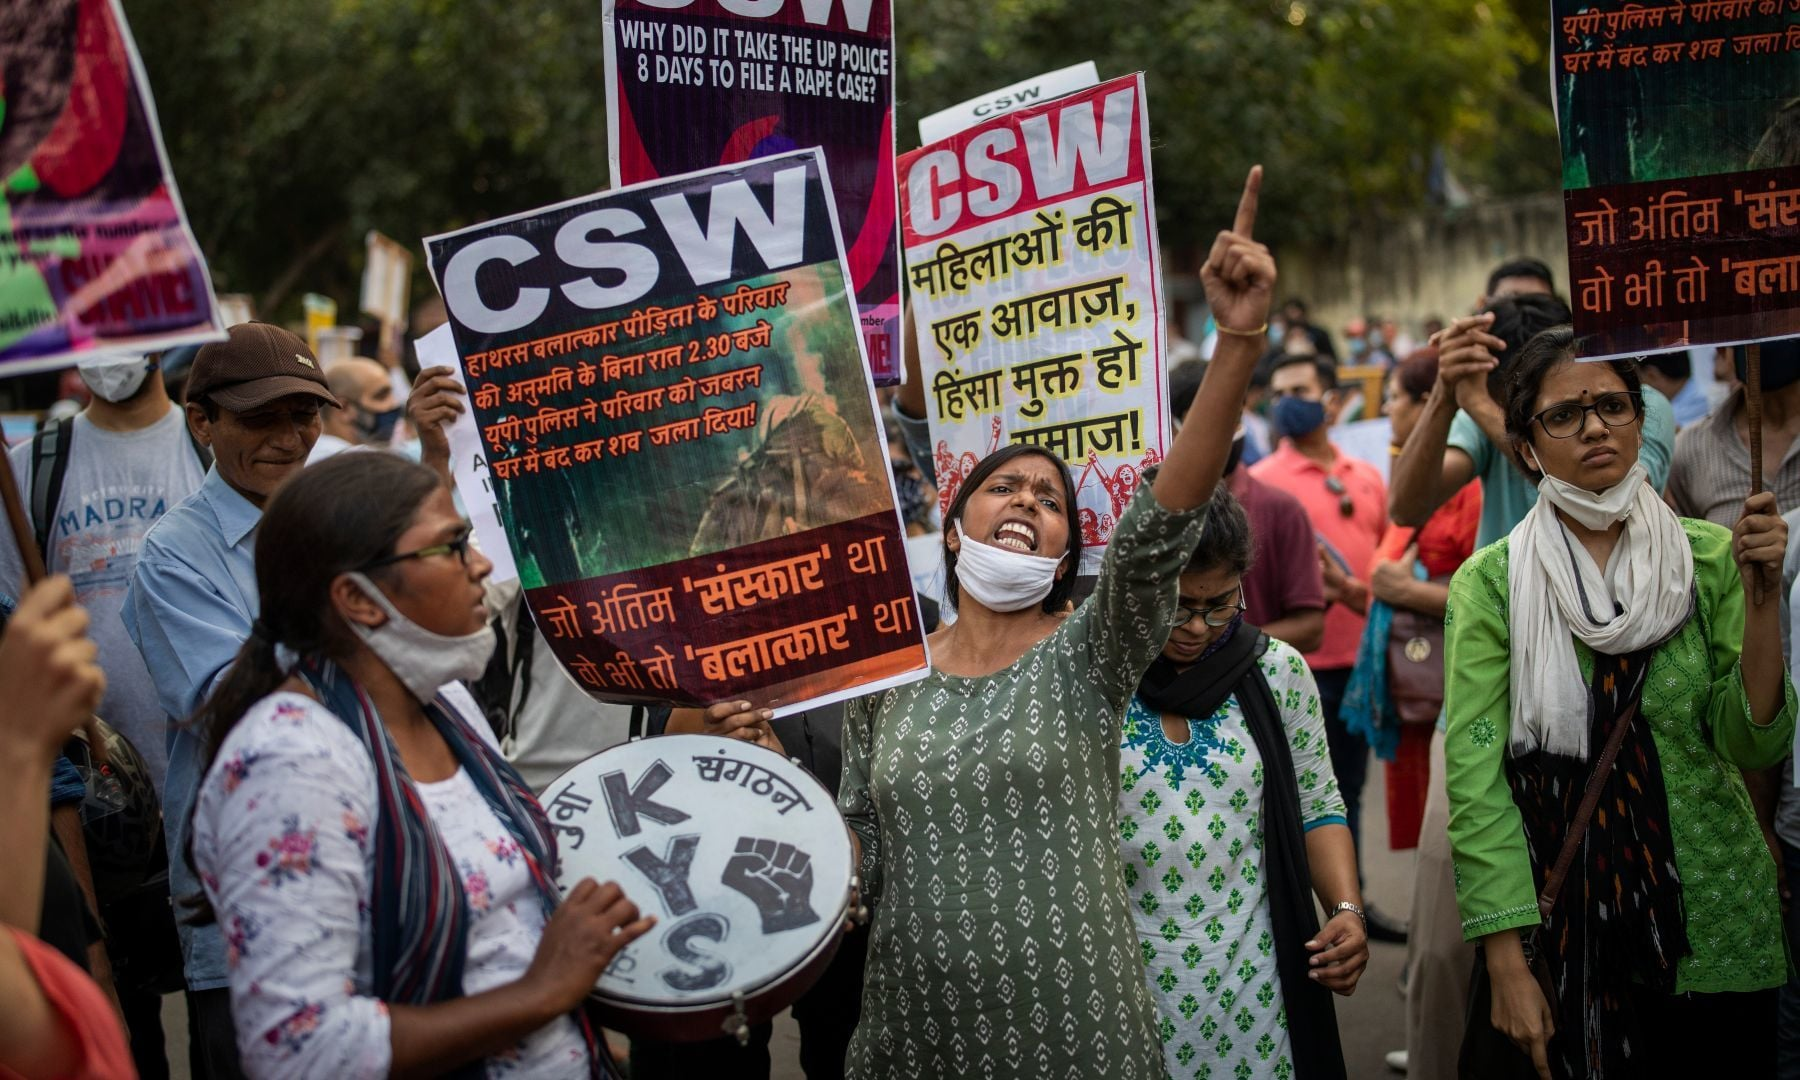 An activist shouts slogans during a protest against the gang rape of a woman in in New Delhi, India, Friday. — AP